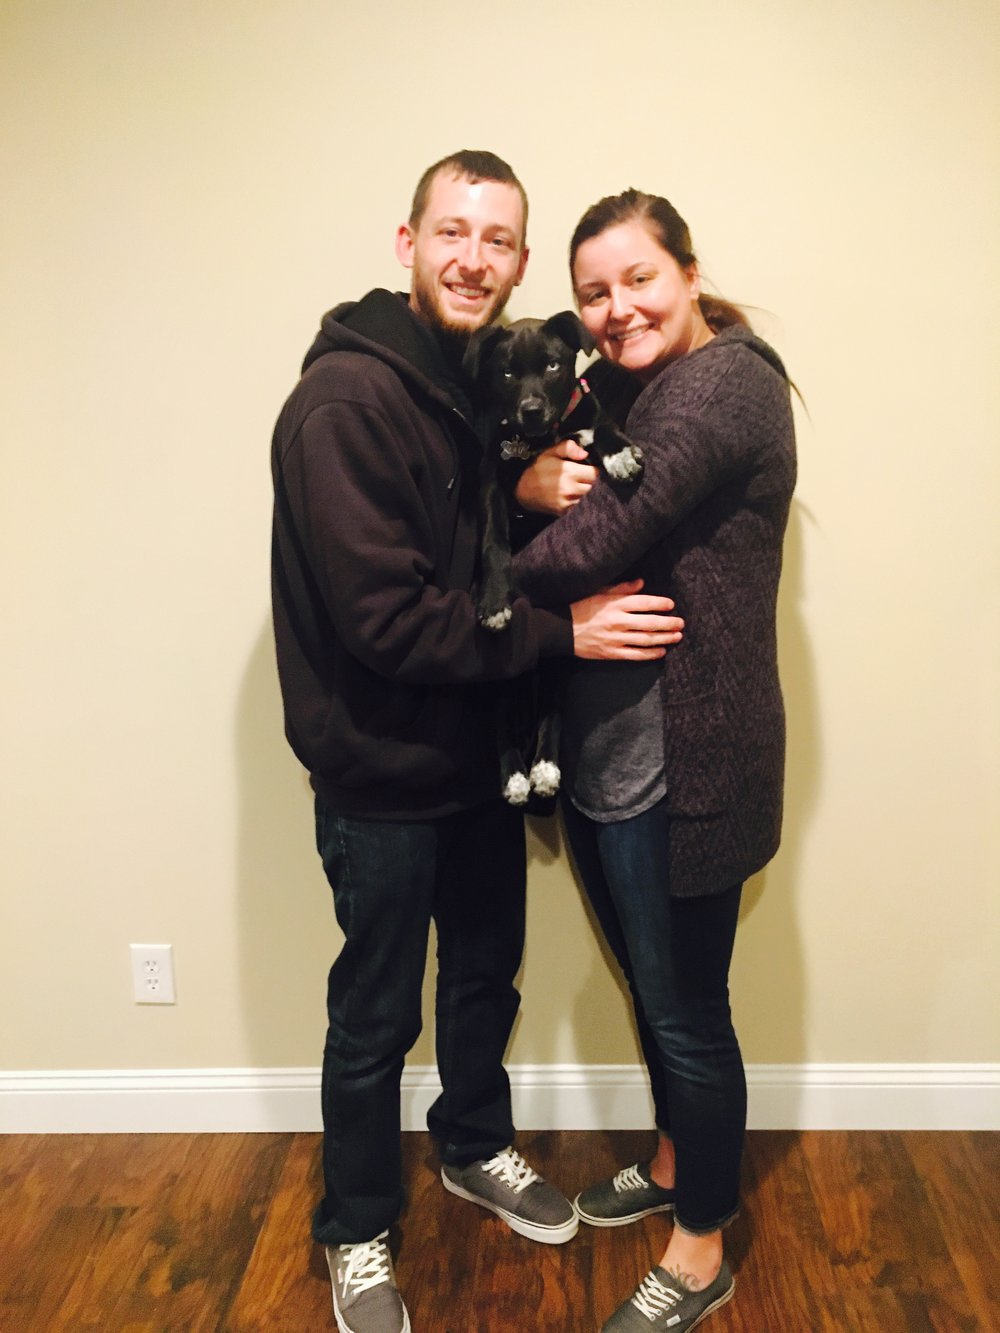 Sweet Mercy is adored by her new mom and dad and has two furry siblings at home too!